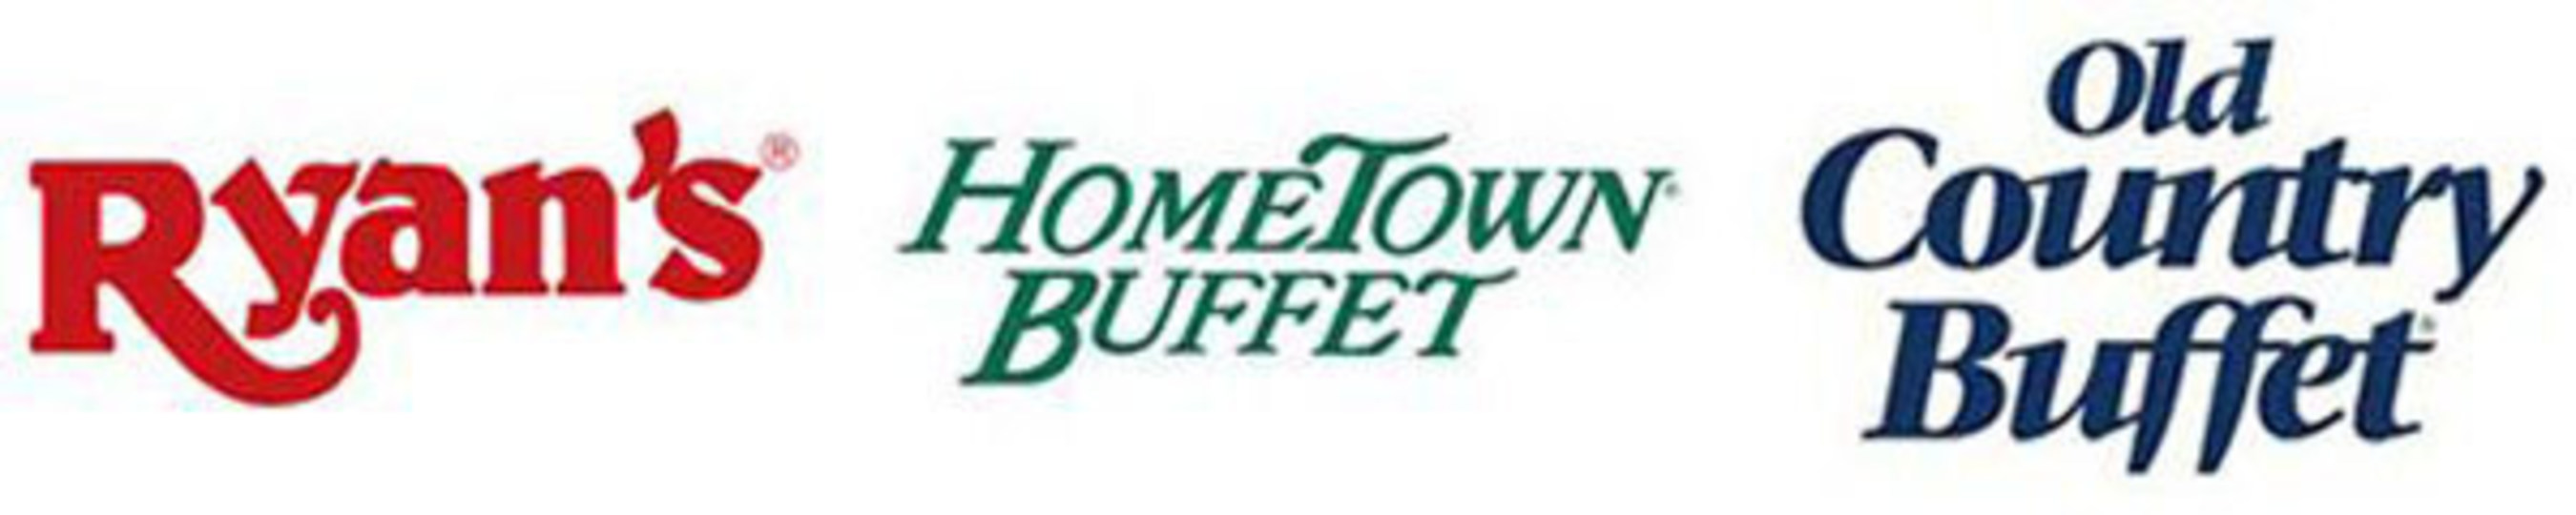 Ryan's®, HomeTown Buffet®, and Old Country Buffet® Have the Ticket to Fundraising